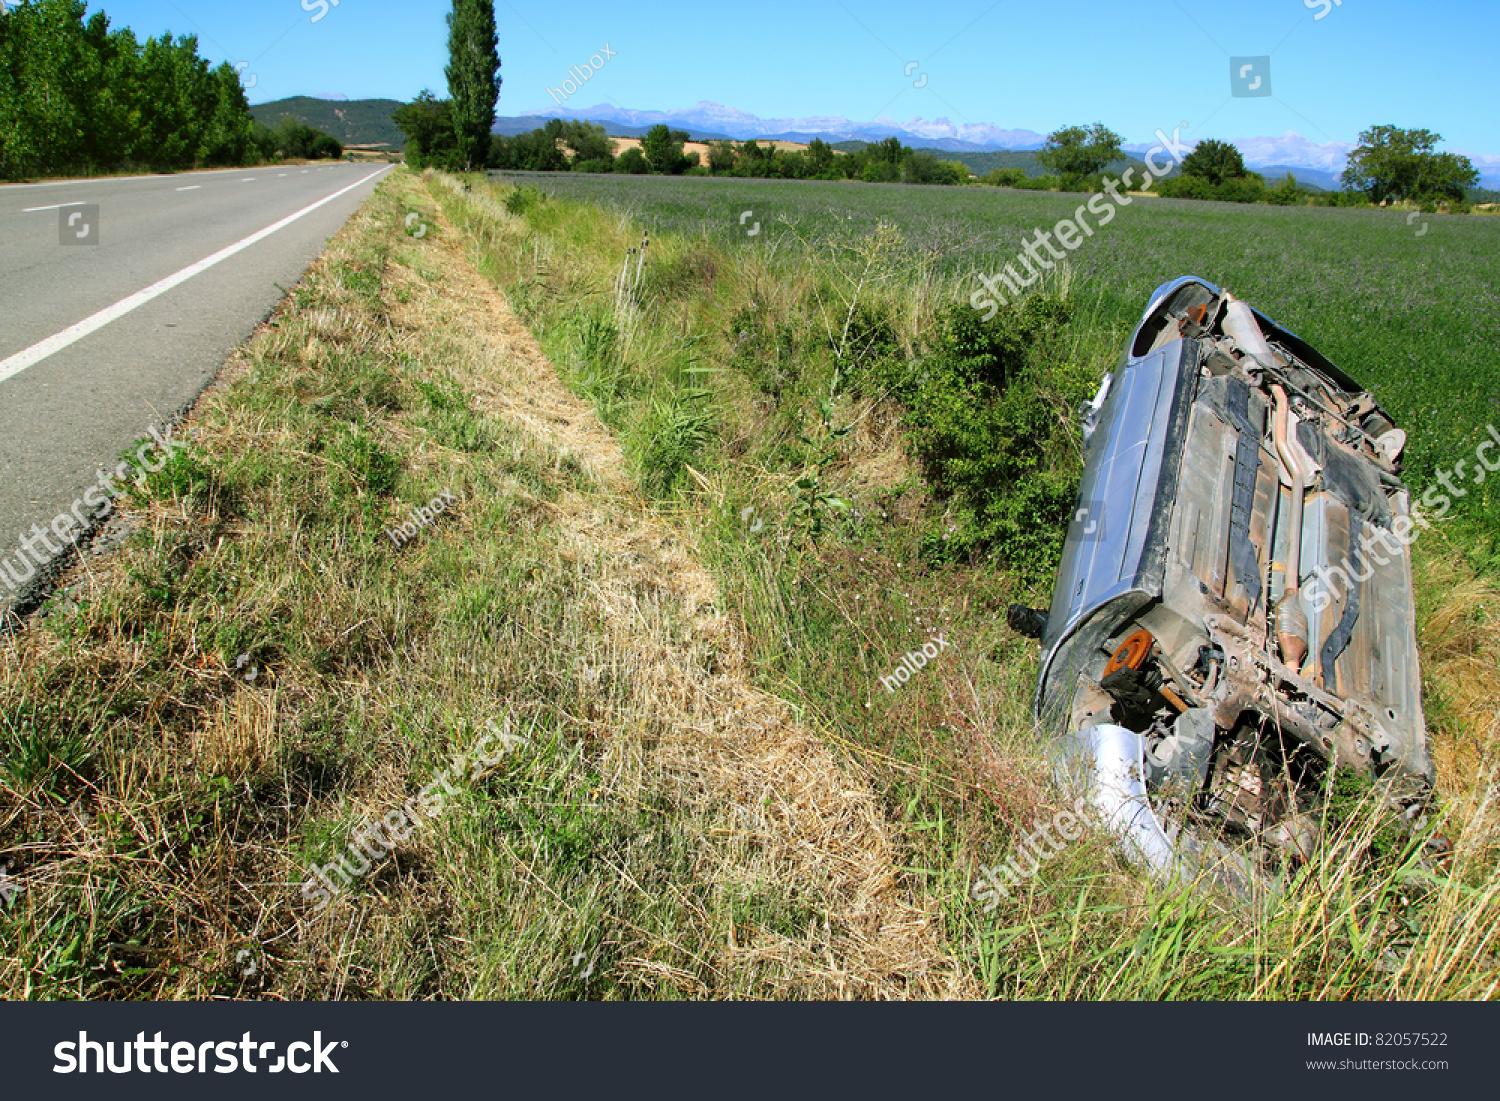 car crash accident with an upside down vehicle off the road stock photo 82057522 shutterstock. Black Bedroom Furniture Sets. Home Design Ideas